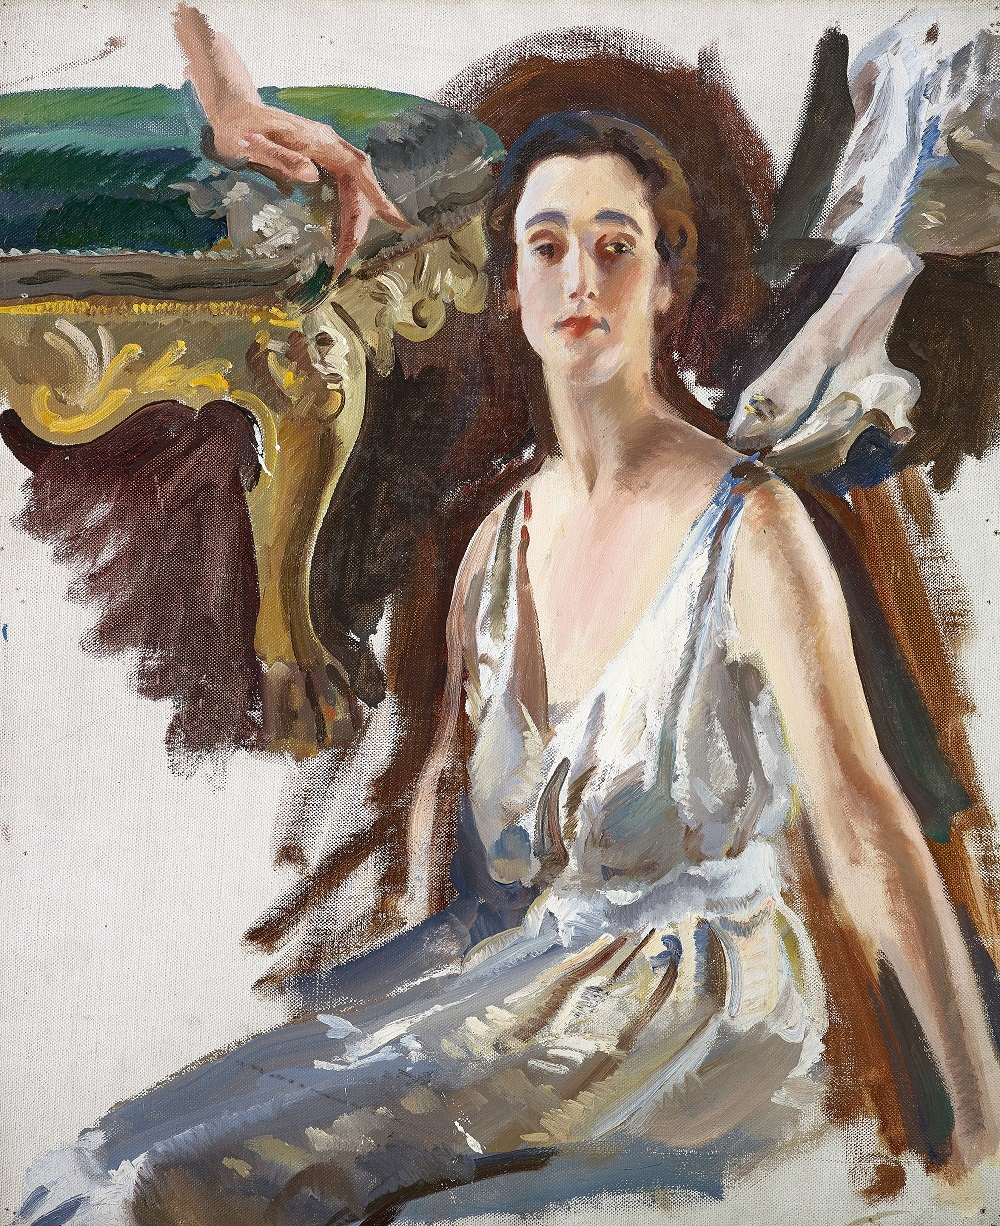 Portrait of Sybil, Countess of Rocksavage by Charles Sims, oil on canvas, 1922. Purchased by Grosvenor Museum, Chester, with support from the ACE/V&A Purchase Grant Fund, Philip Mould, Art Fund, and the Grosvenor Museum Society